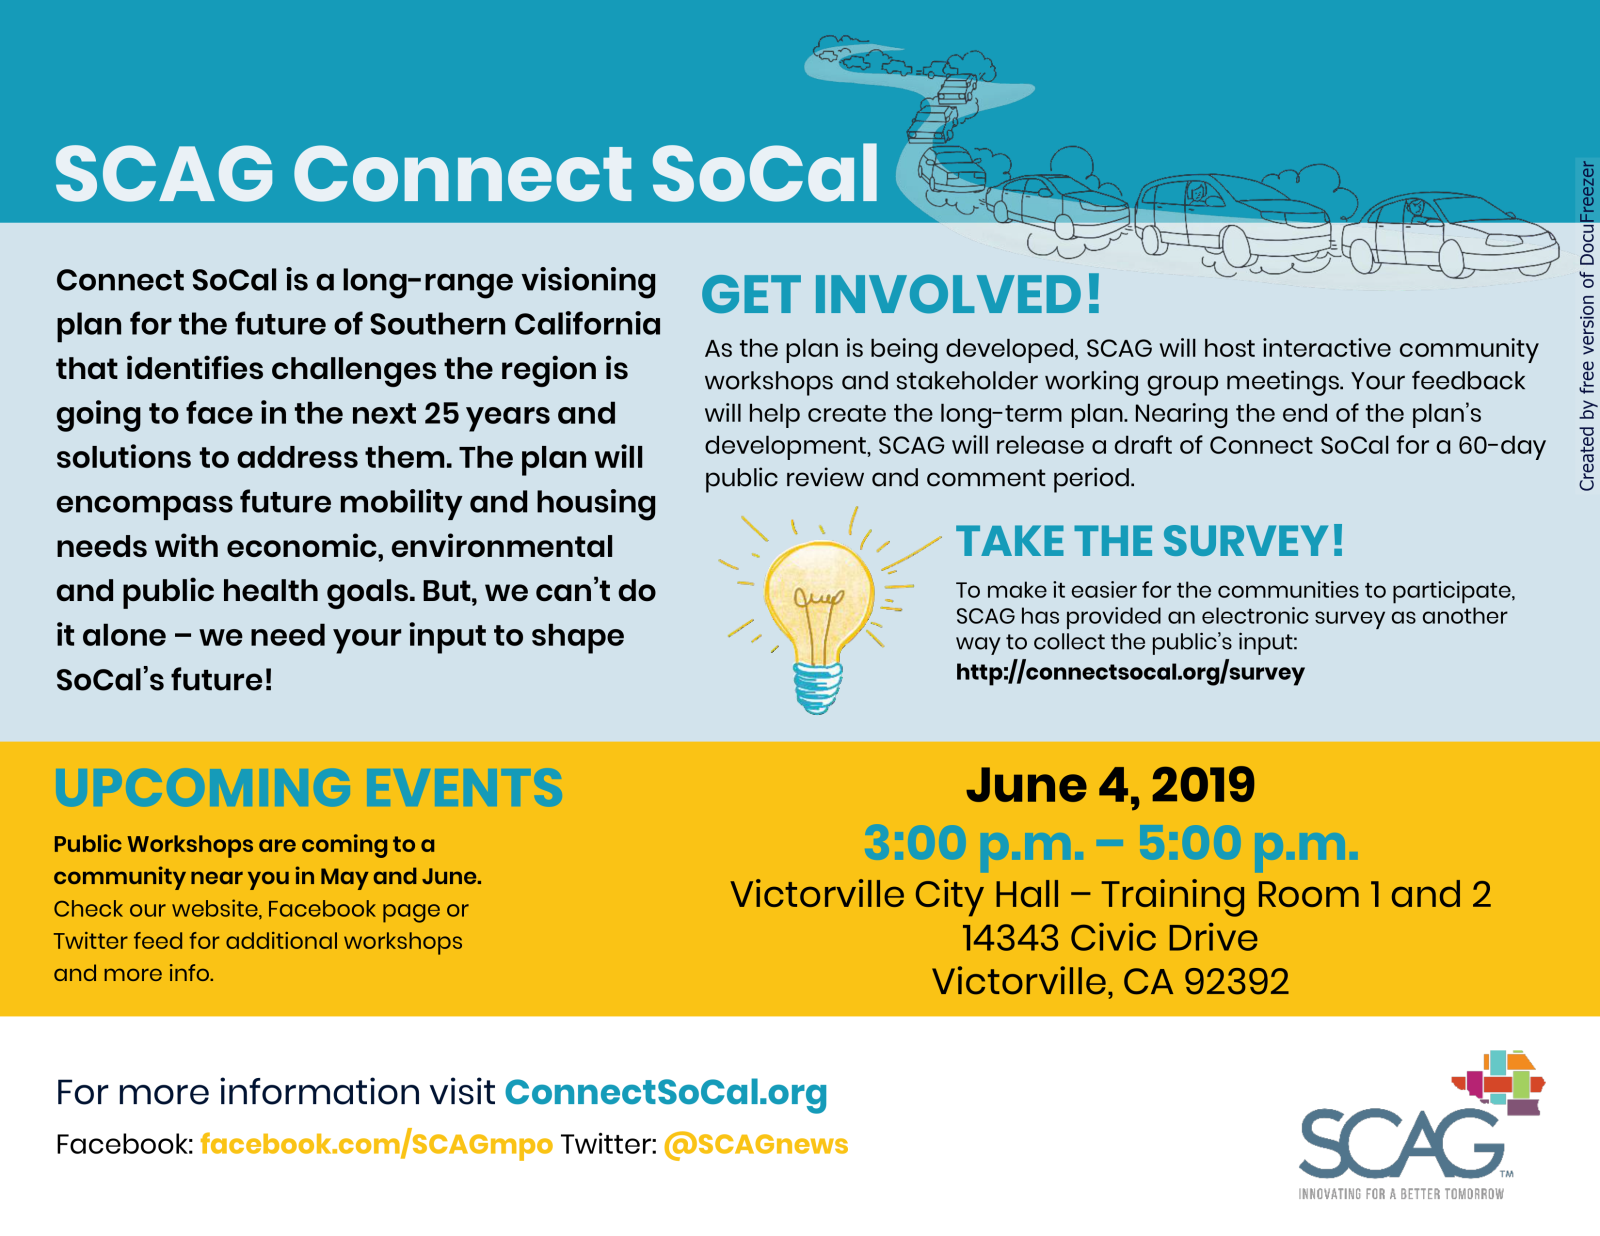 Victorville City Hall Connect SoCal Workshop 3PM June 4 2019